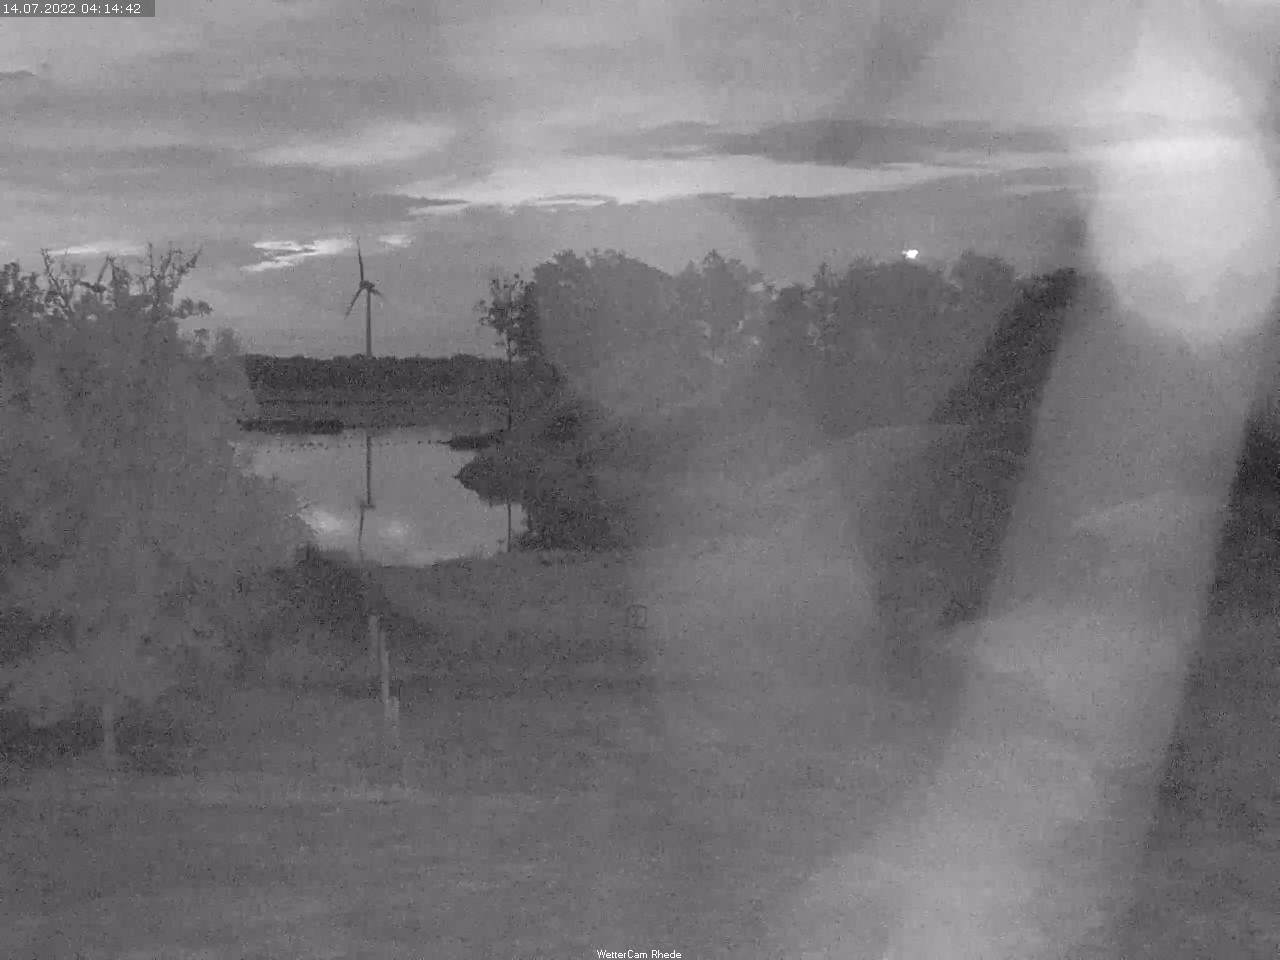 Wetter WebCam Rhede